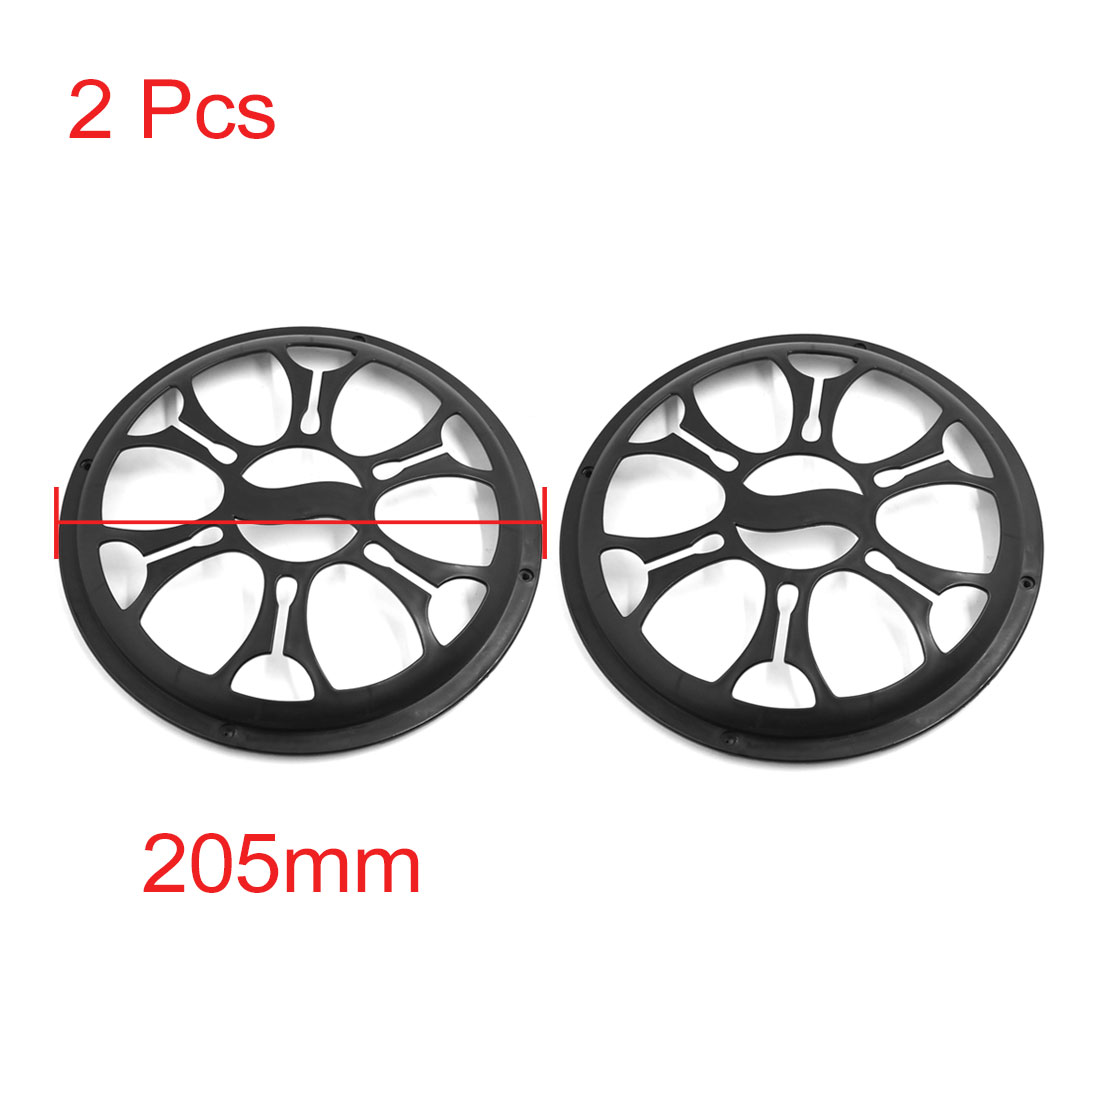 X Autohaux Black Plastic 8 Inch Car Speaker Sub Woofer Grill Cover Guard Protector 2Pcs